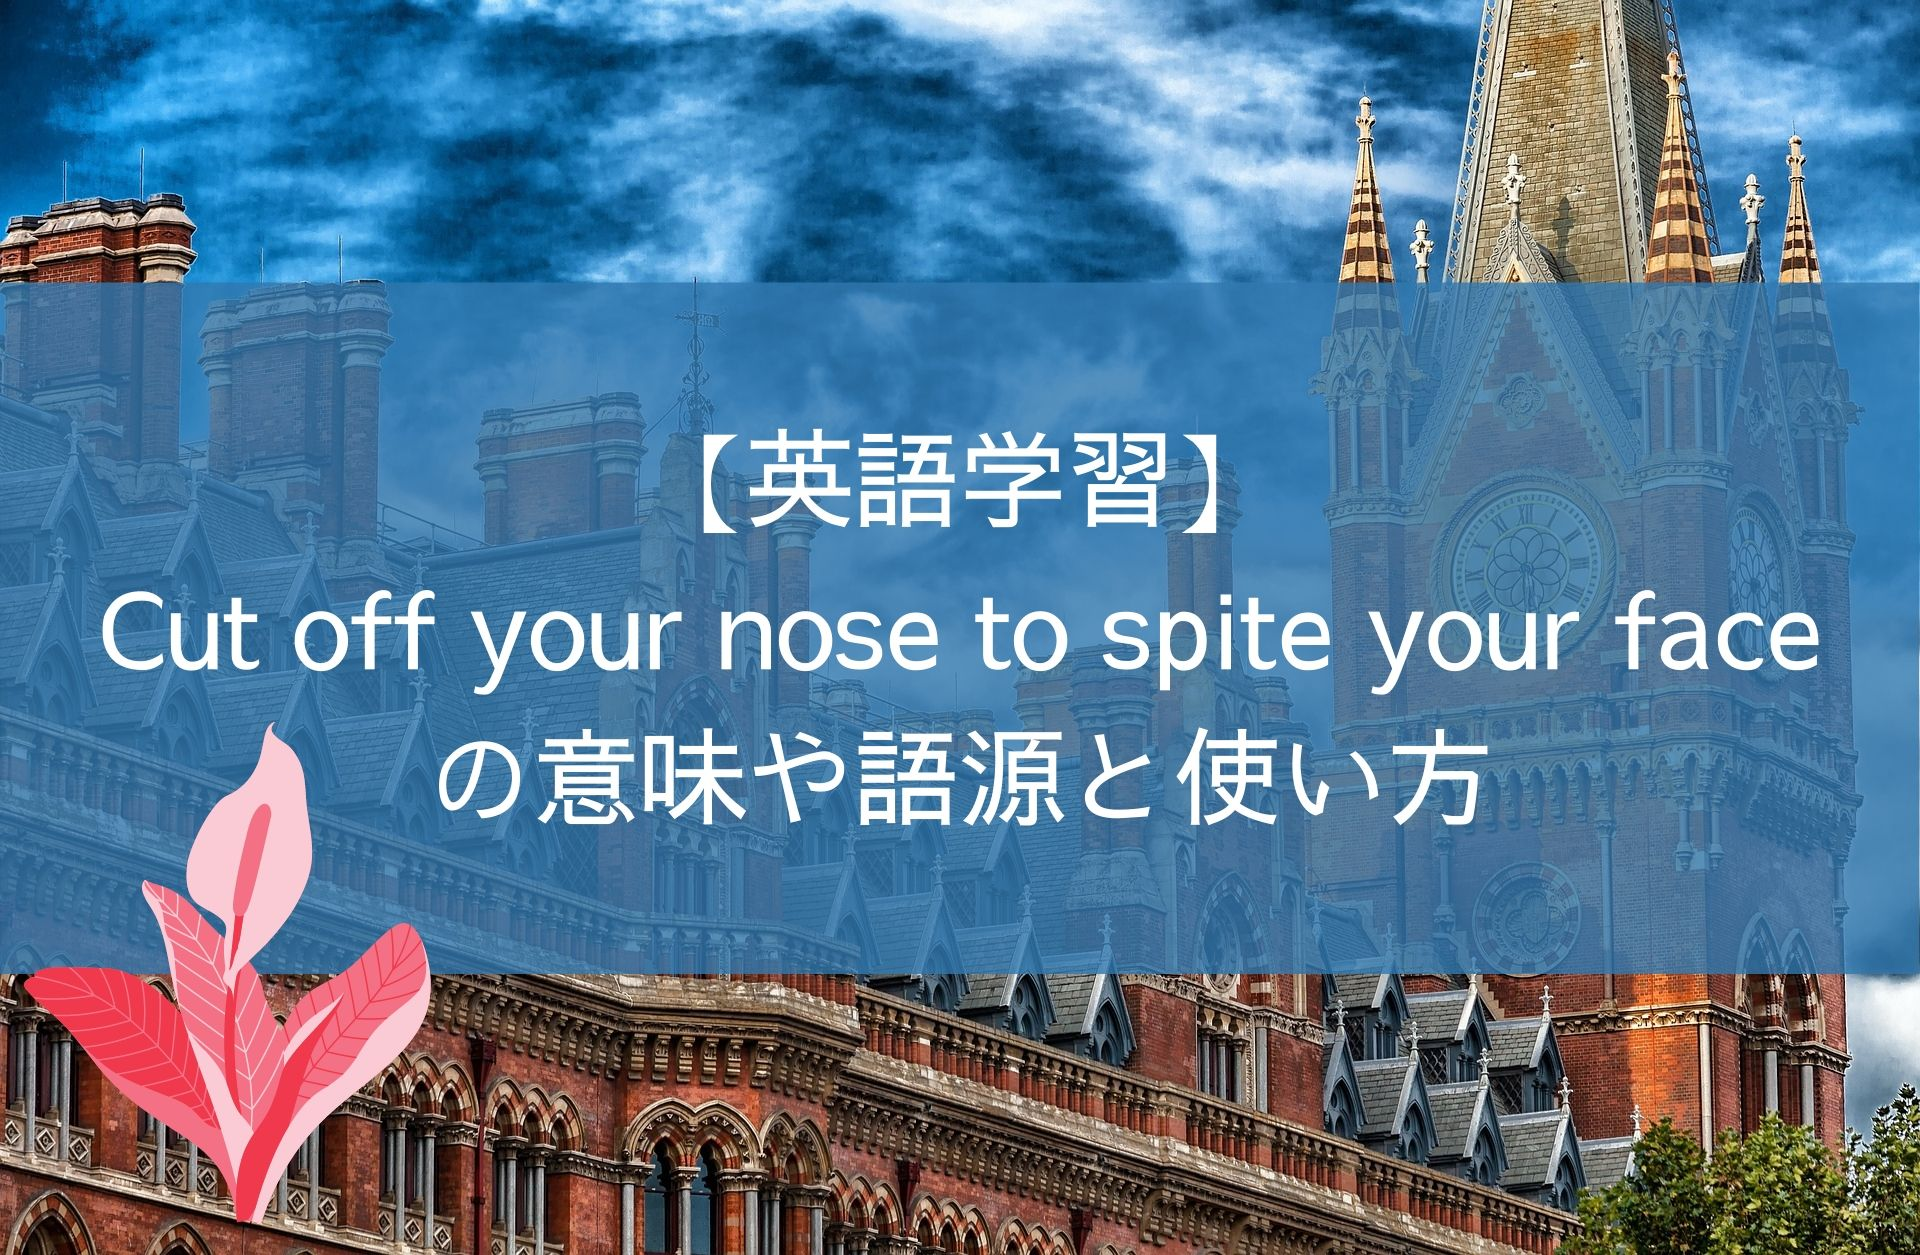 【英語学習】Cut off your nose to spite your faceの意味と使い方